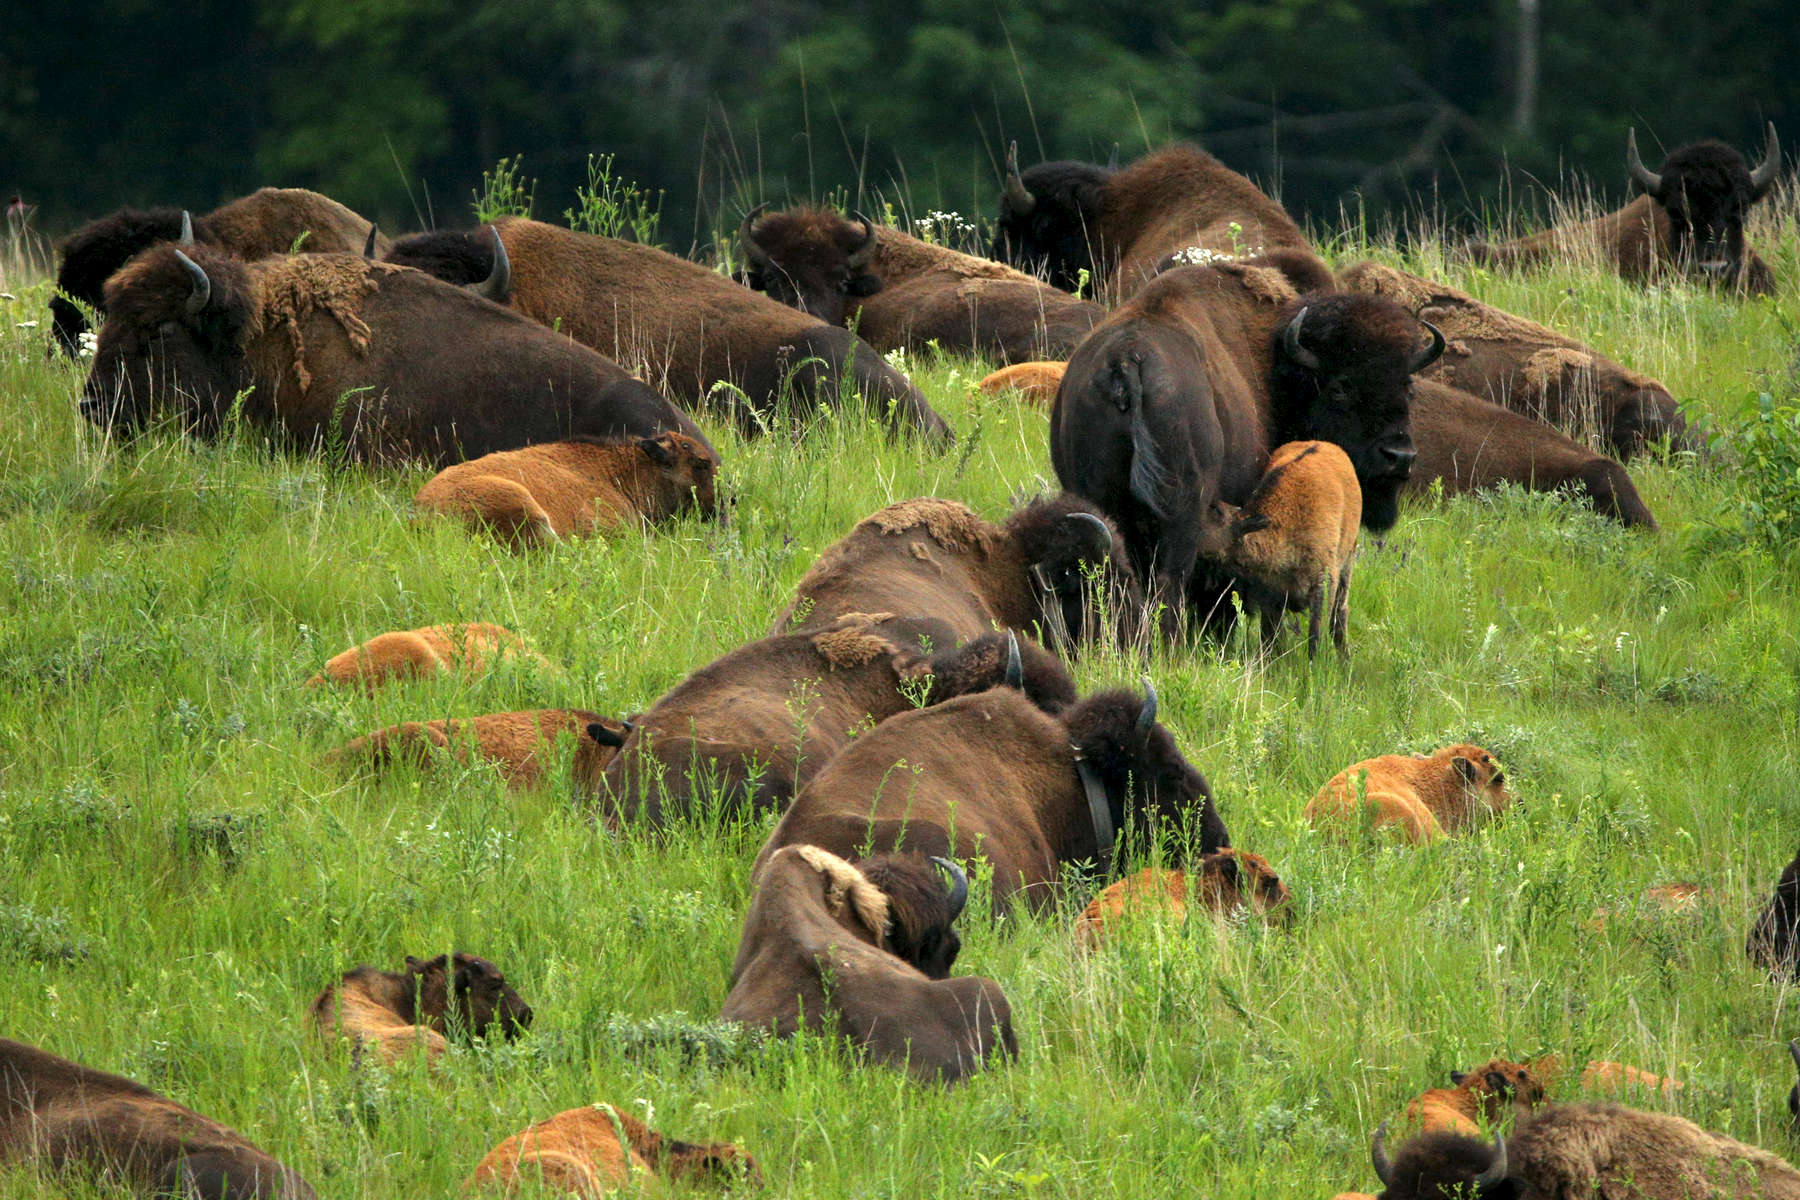 A bison cow nurses her calf as they stand with the herd in the tall grass at the Nachusa Grasslands. More than 10 bison calves were born in the herd's first year in Illinois.